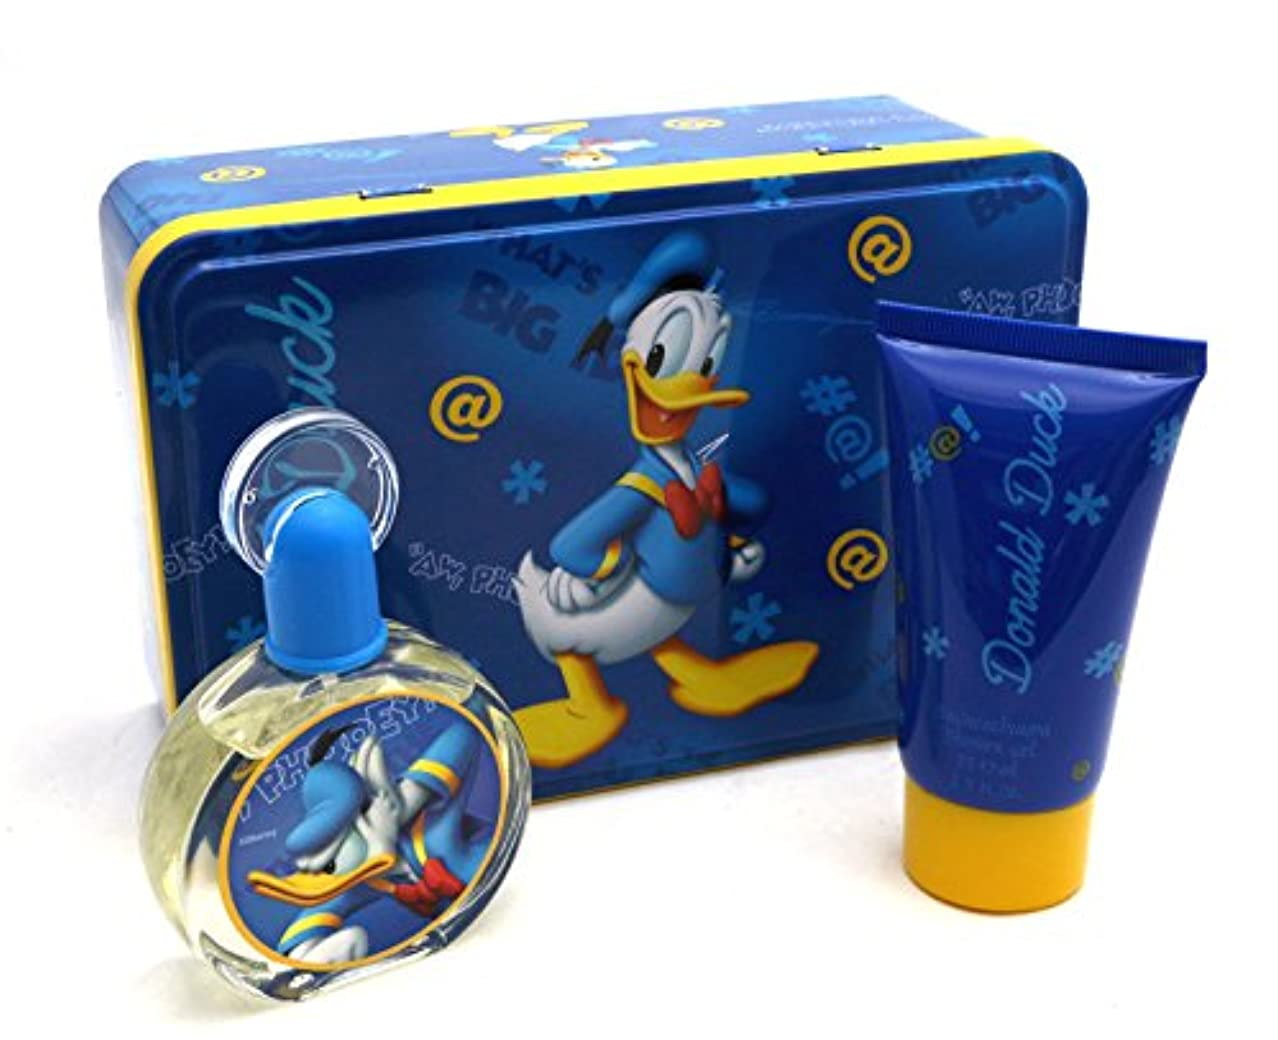 不当ドリル自伝Donald Duck (ドナルドダック) 1.7 oz (50ml) EDT Spray + 2.5 oz (75ml) Shower Gel by Disney